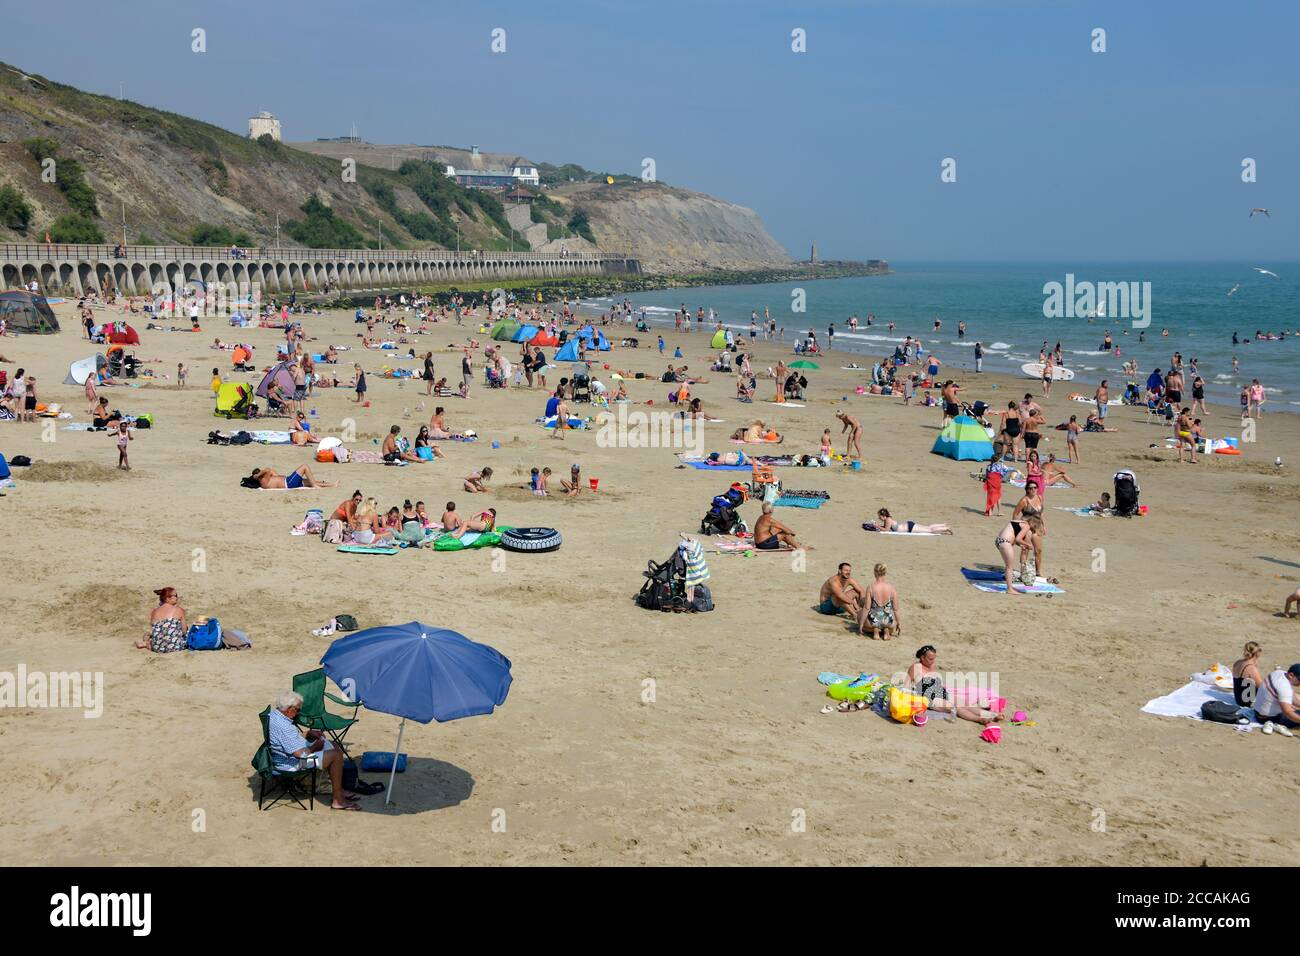 Gens Folkestone Beach Kent Angleterre Banque D'Images